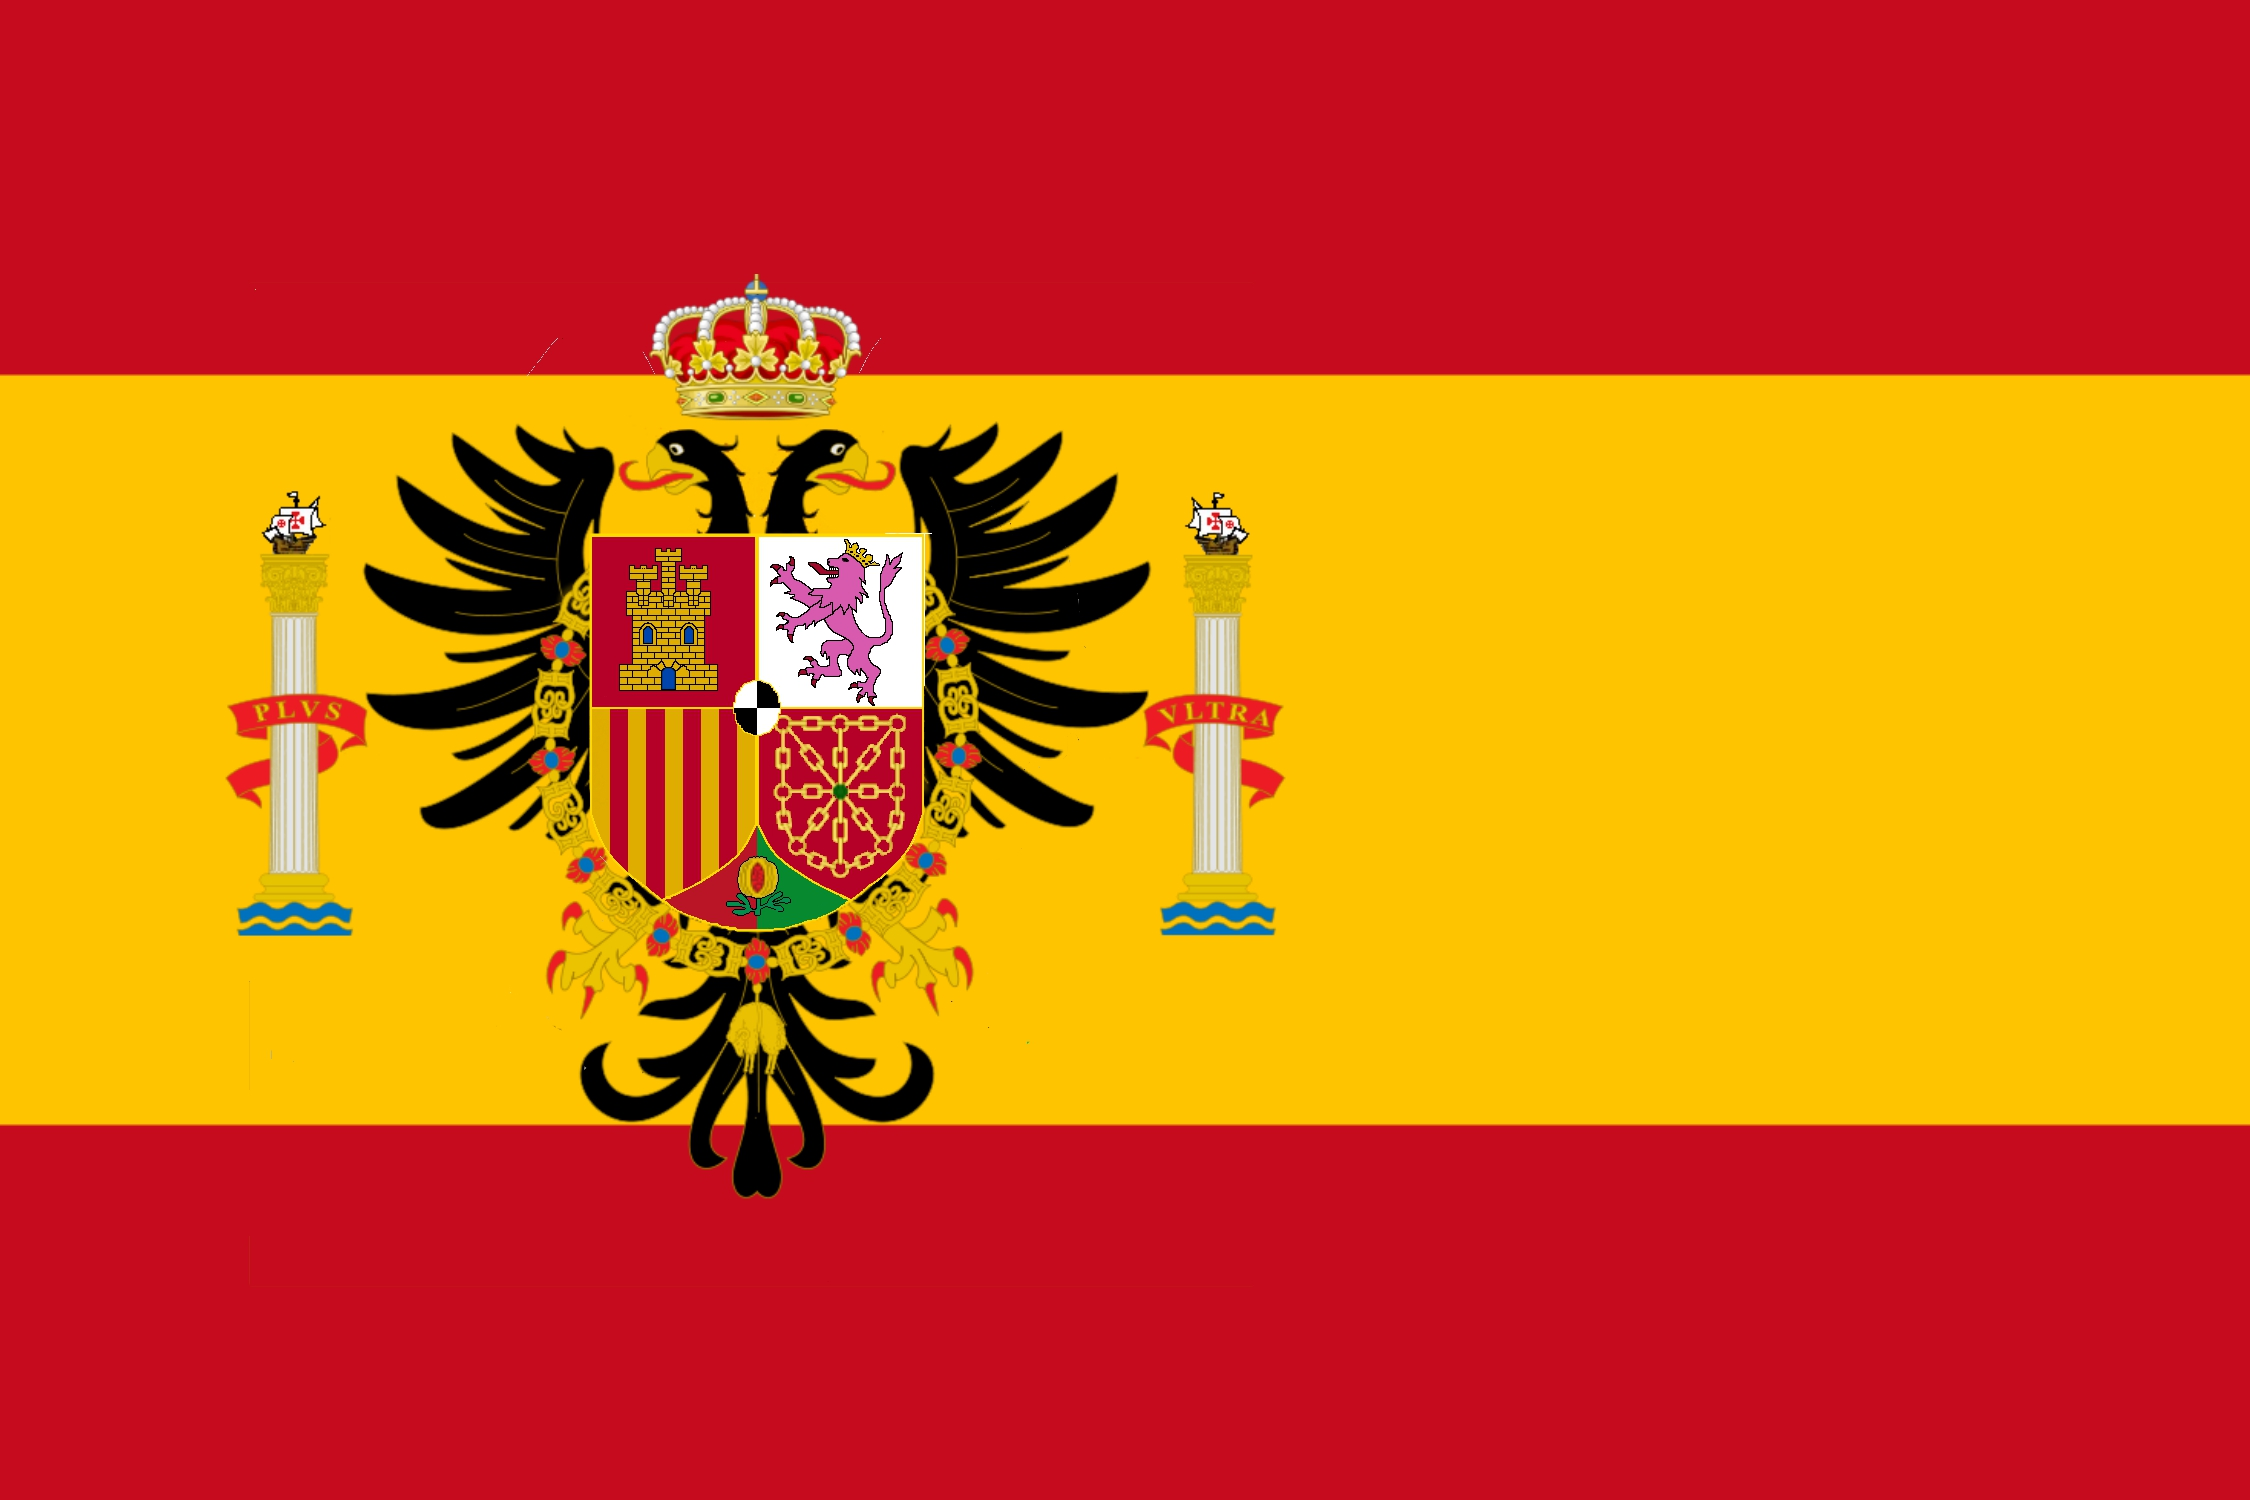 Kingdom of Spain (The Legacy of the Glorious)